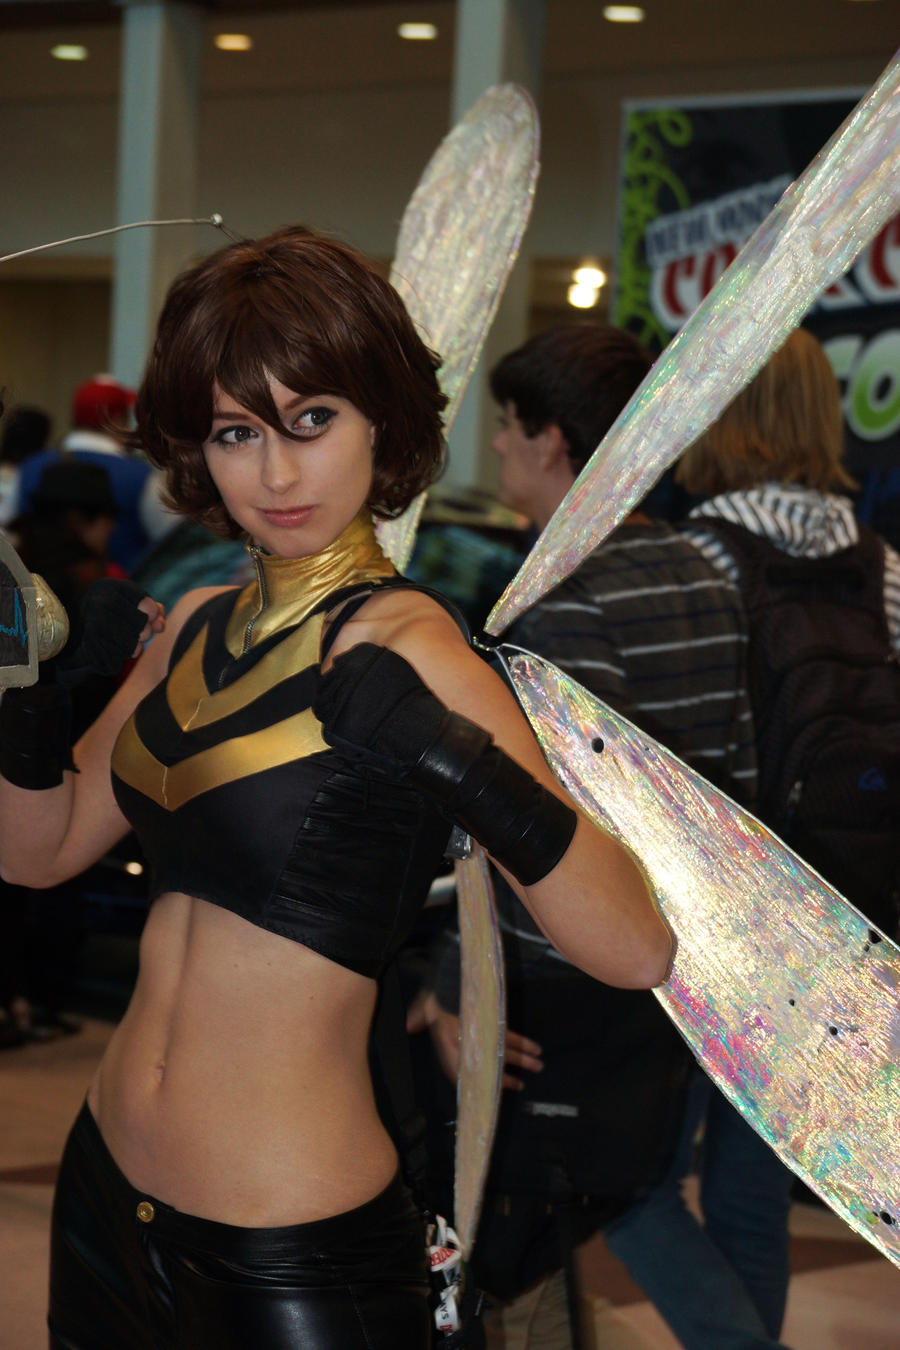 NYCC 2012 - The Wasp by kamau123